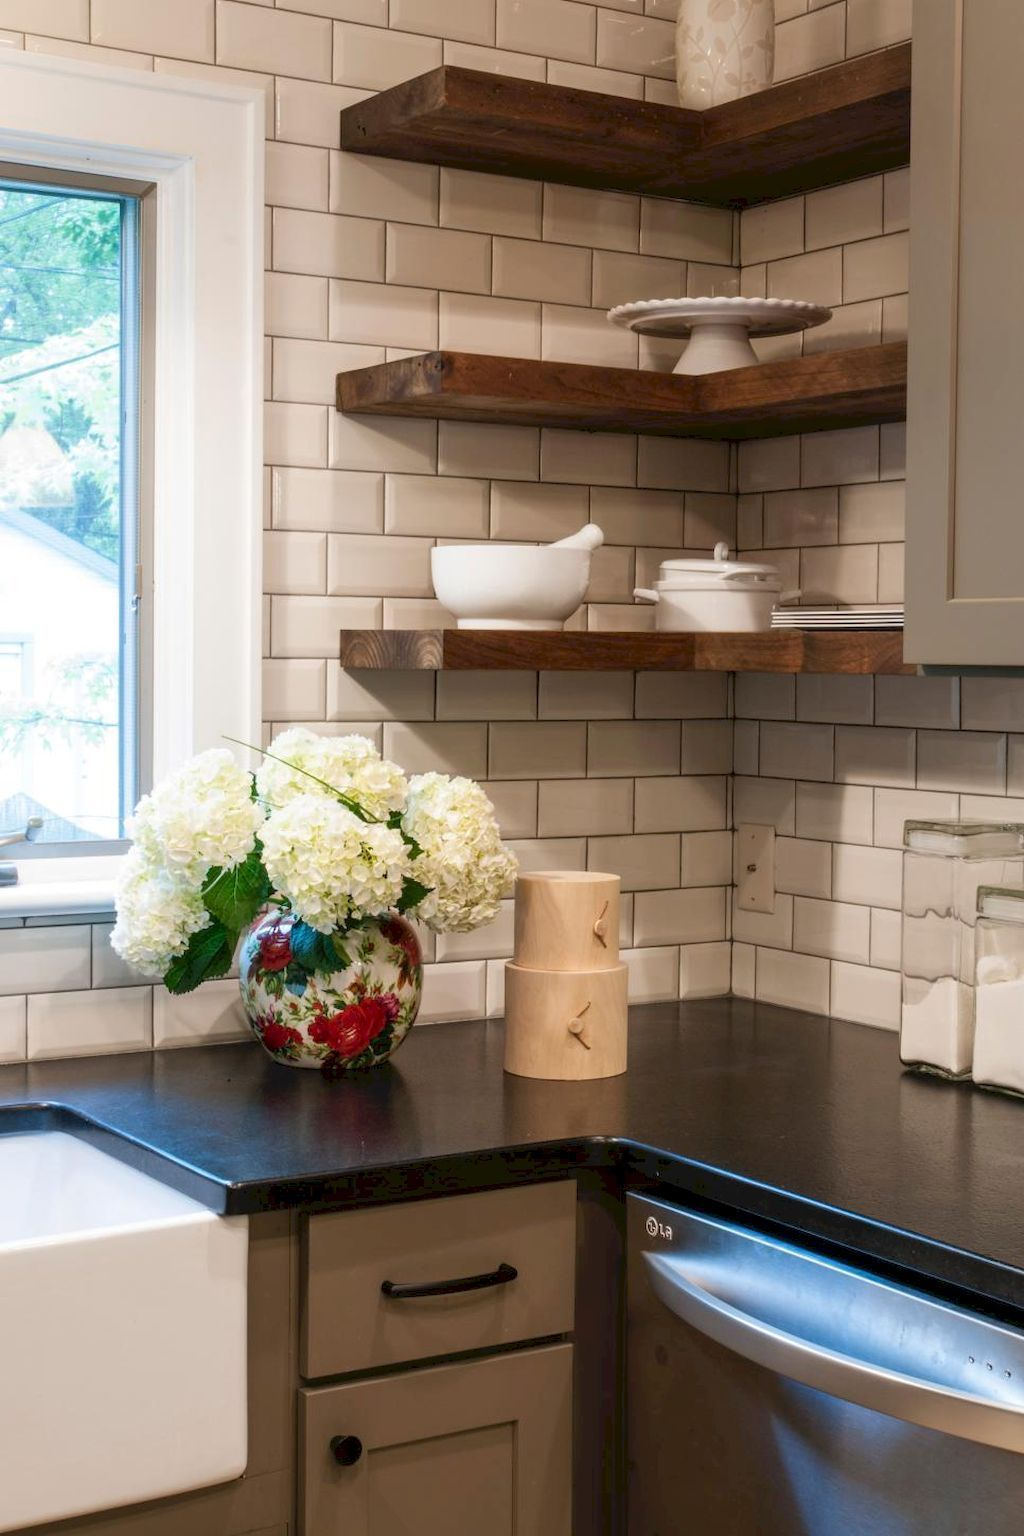 Pin By Hayleigh Shannon Brown On Kitchen With Images Kitchen